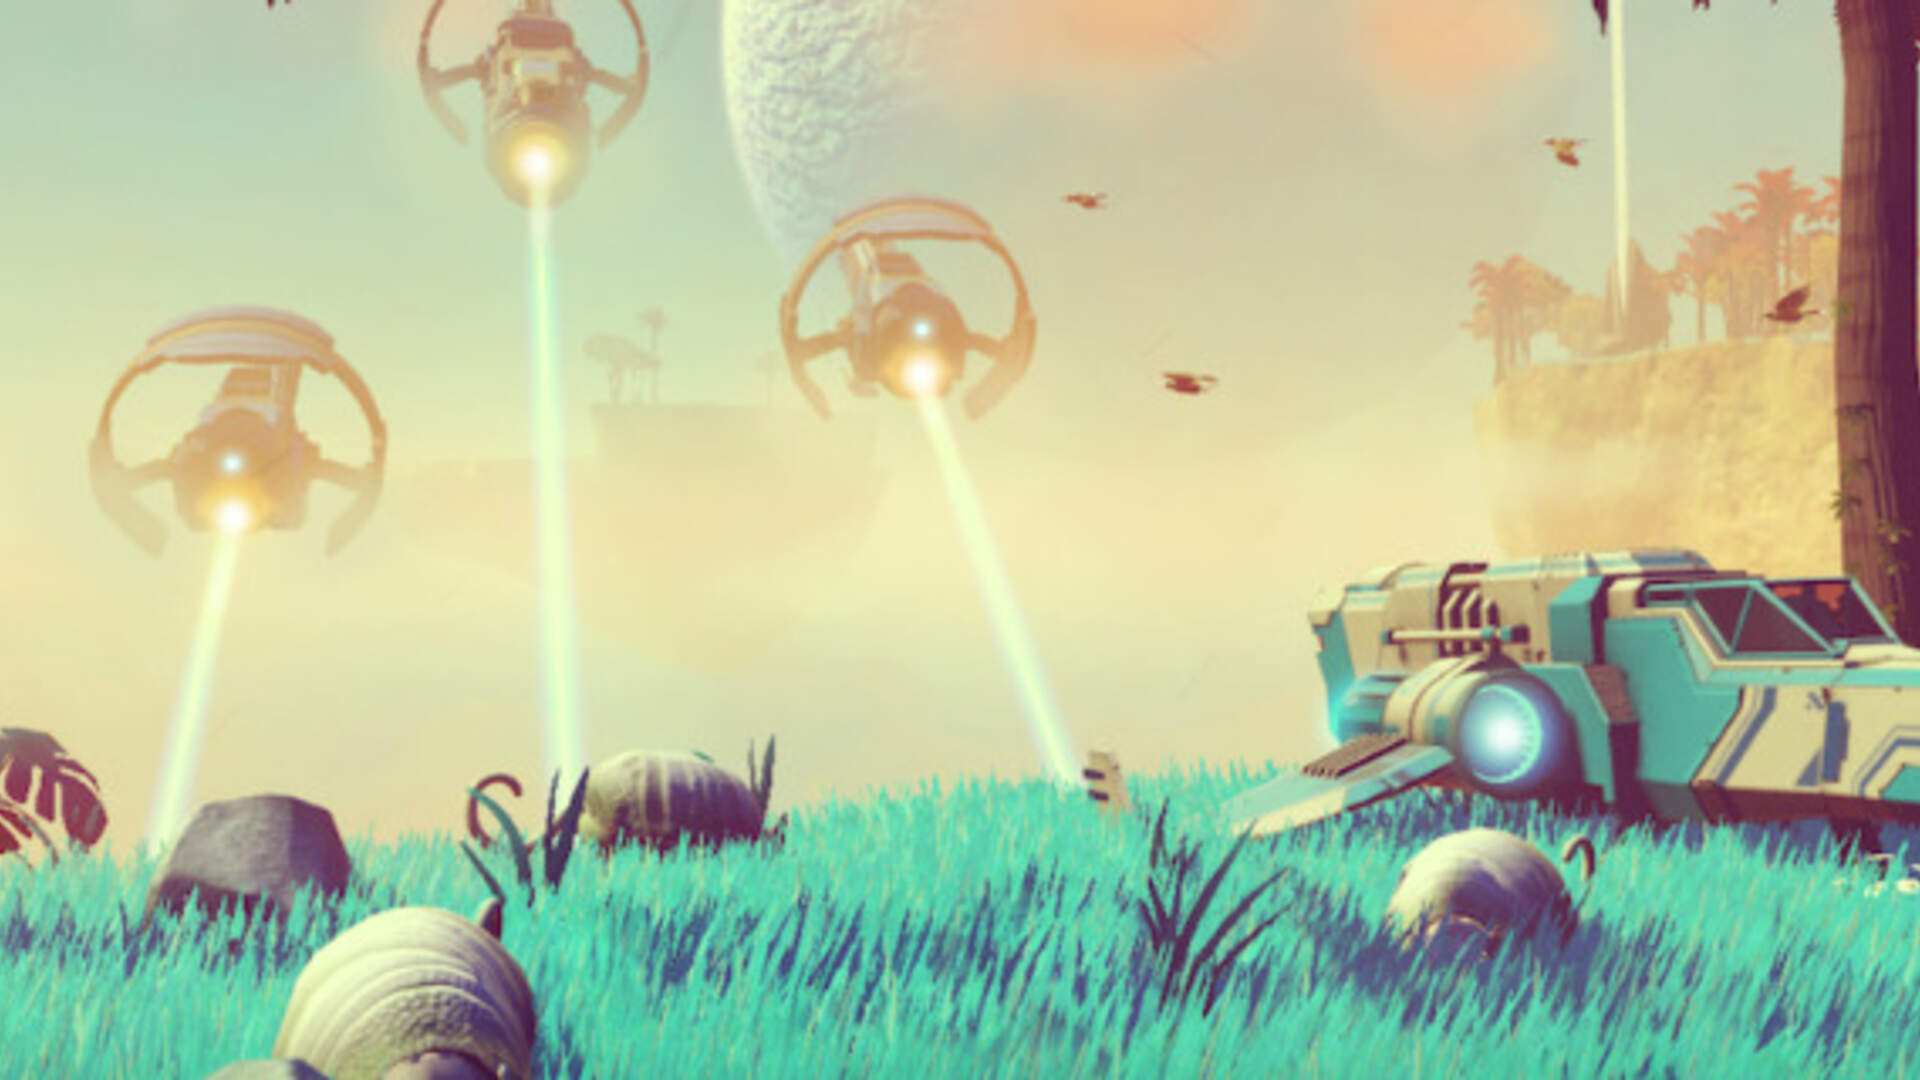 No Man's Sky PS4 Preview: Procedurally-Generating the Final Frontier